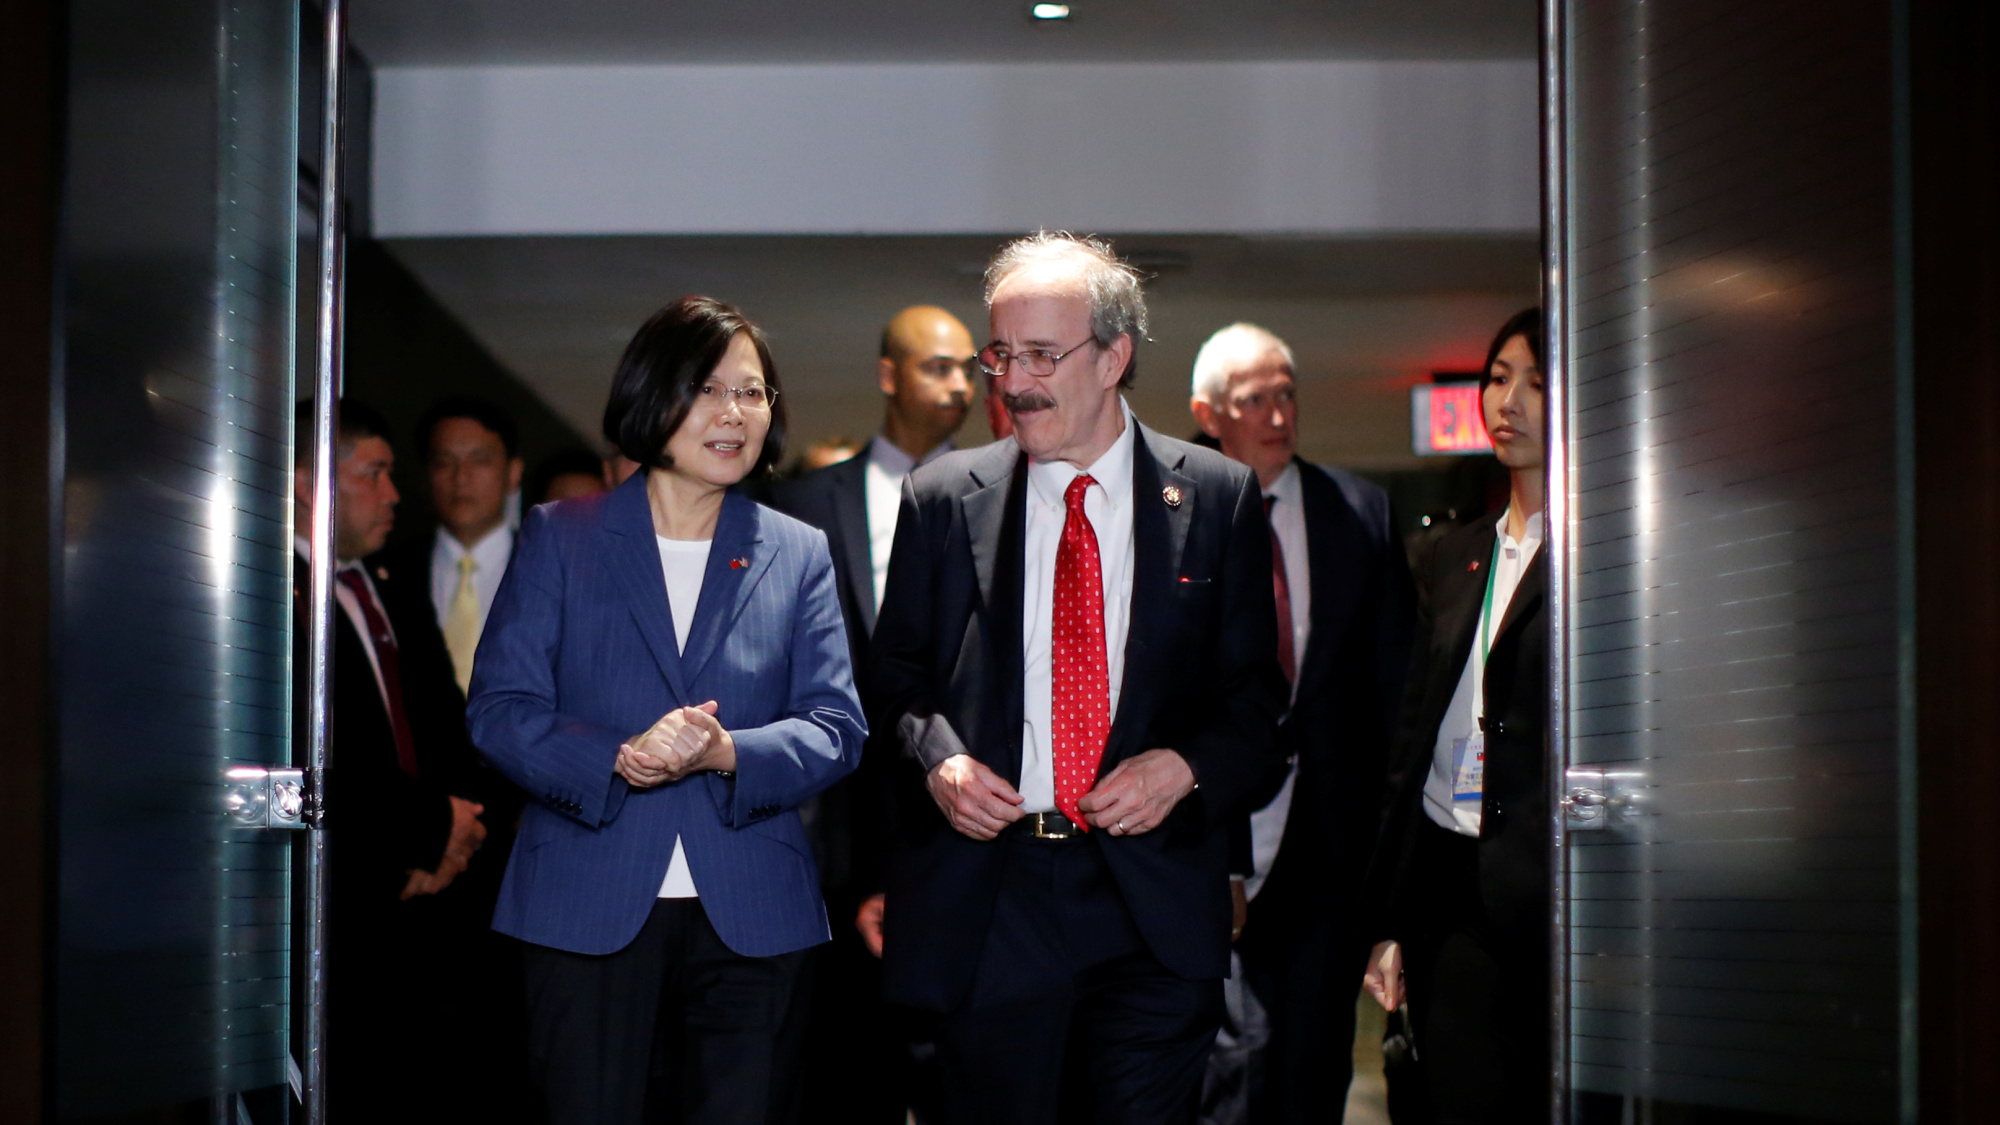 Taiwan President Tsai Ing-wen arrives for VIP reception at the Hyatt hotel in New York on Friday. | REUTERS